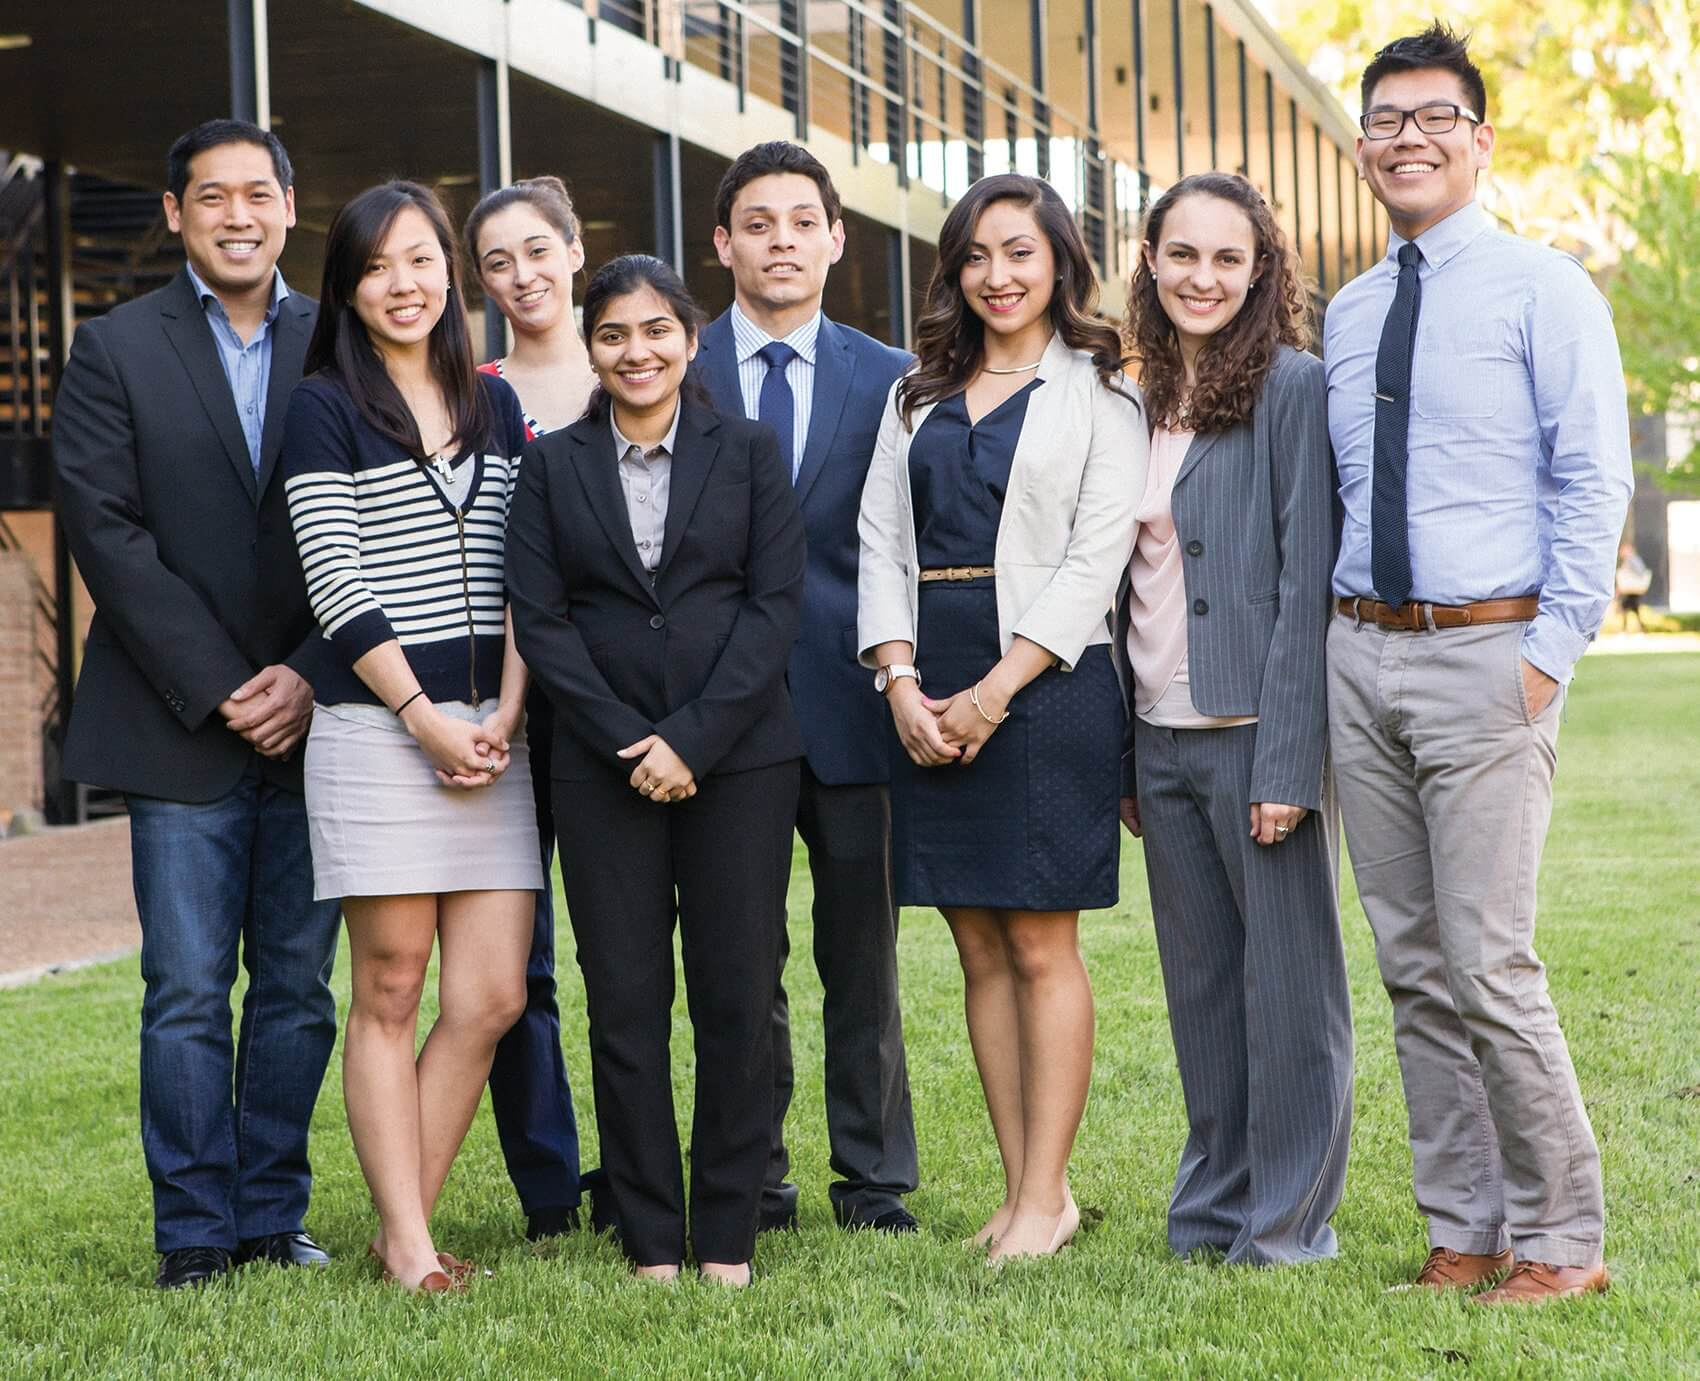 The inaugural Master in Clinical Translation Management class, from left to right: Richard Le, Rosemary Tran, Maria Babu, Heather Vasquez, Homer Quintana, Perla Rodriguez, Amy Ewbank and Dr. Edward Nam.